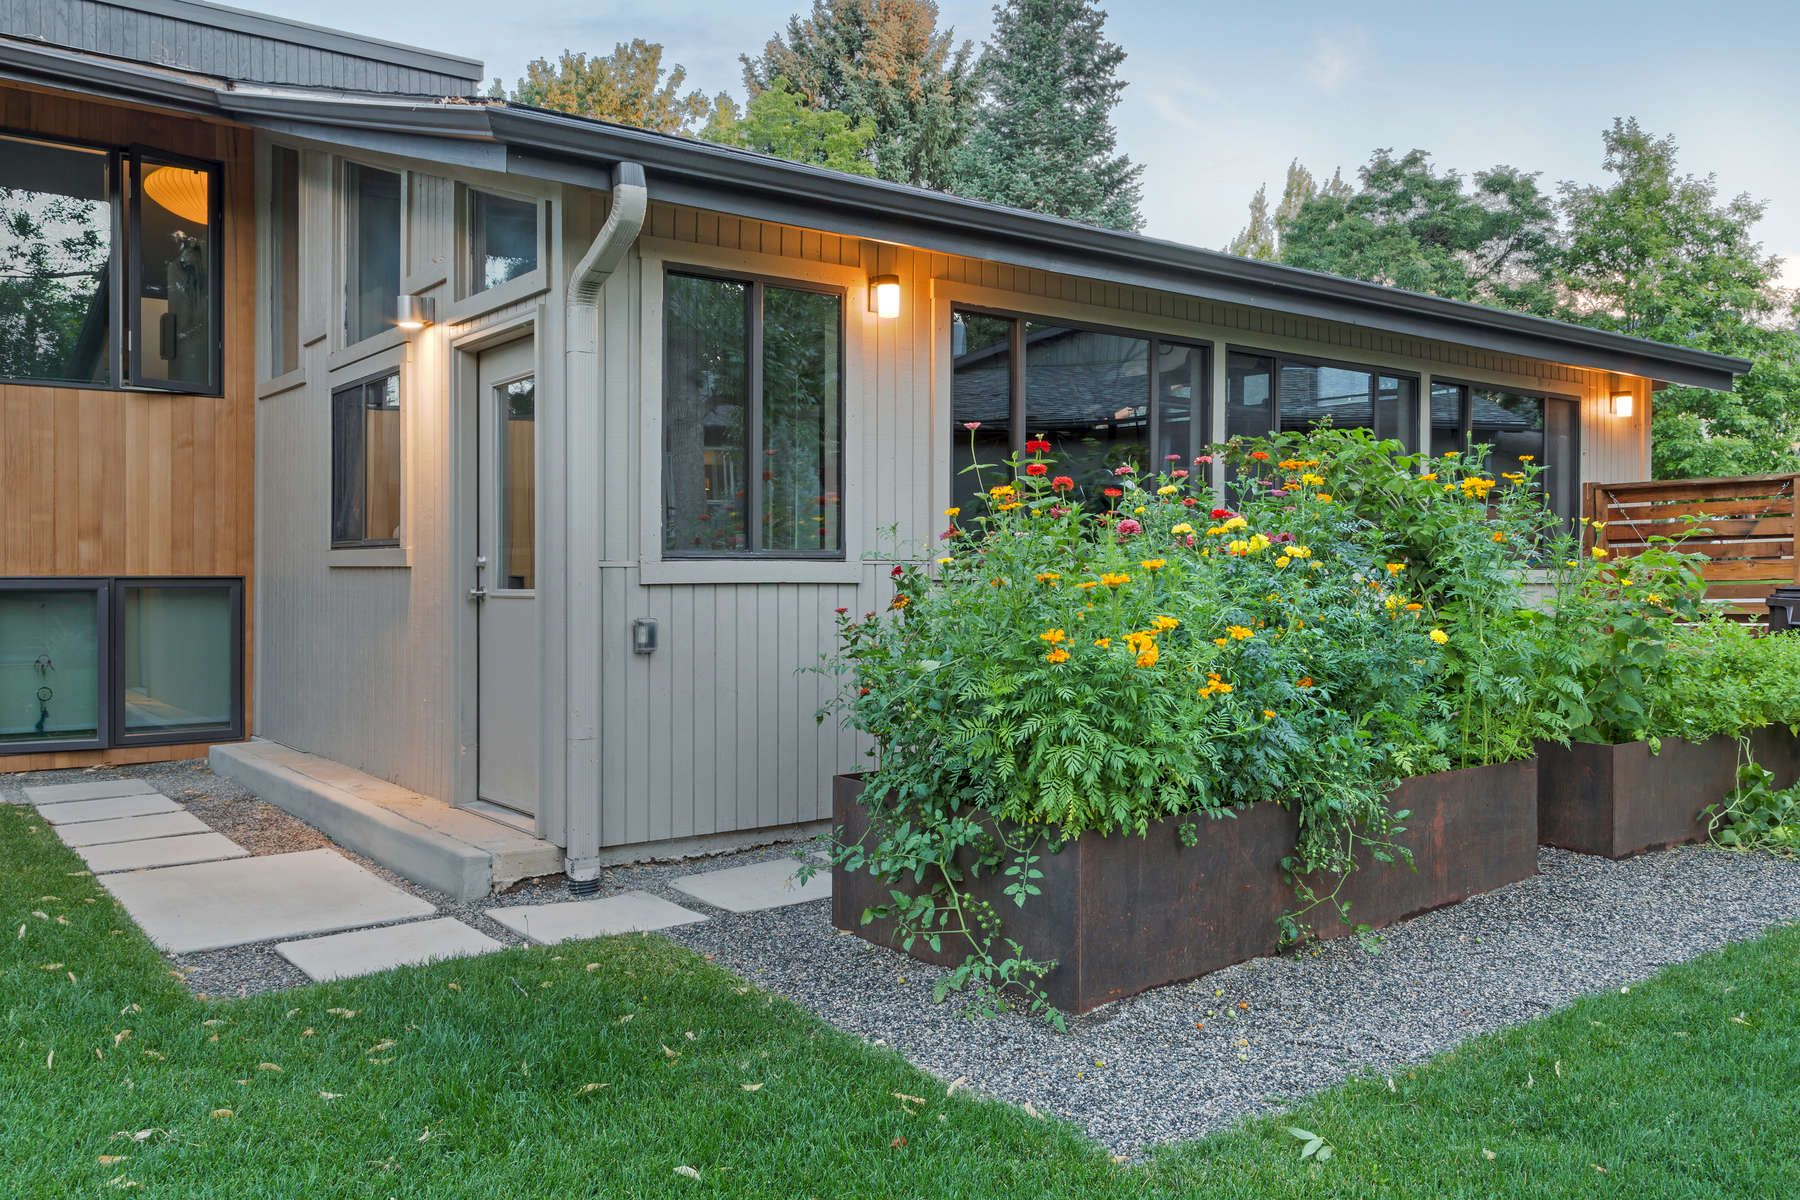 Mid Century Modern - entry courtyard and outdoor living spaces, raised steel garden beds : : R DESIGN land architects in New York and Colorado